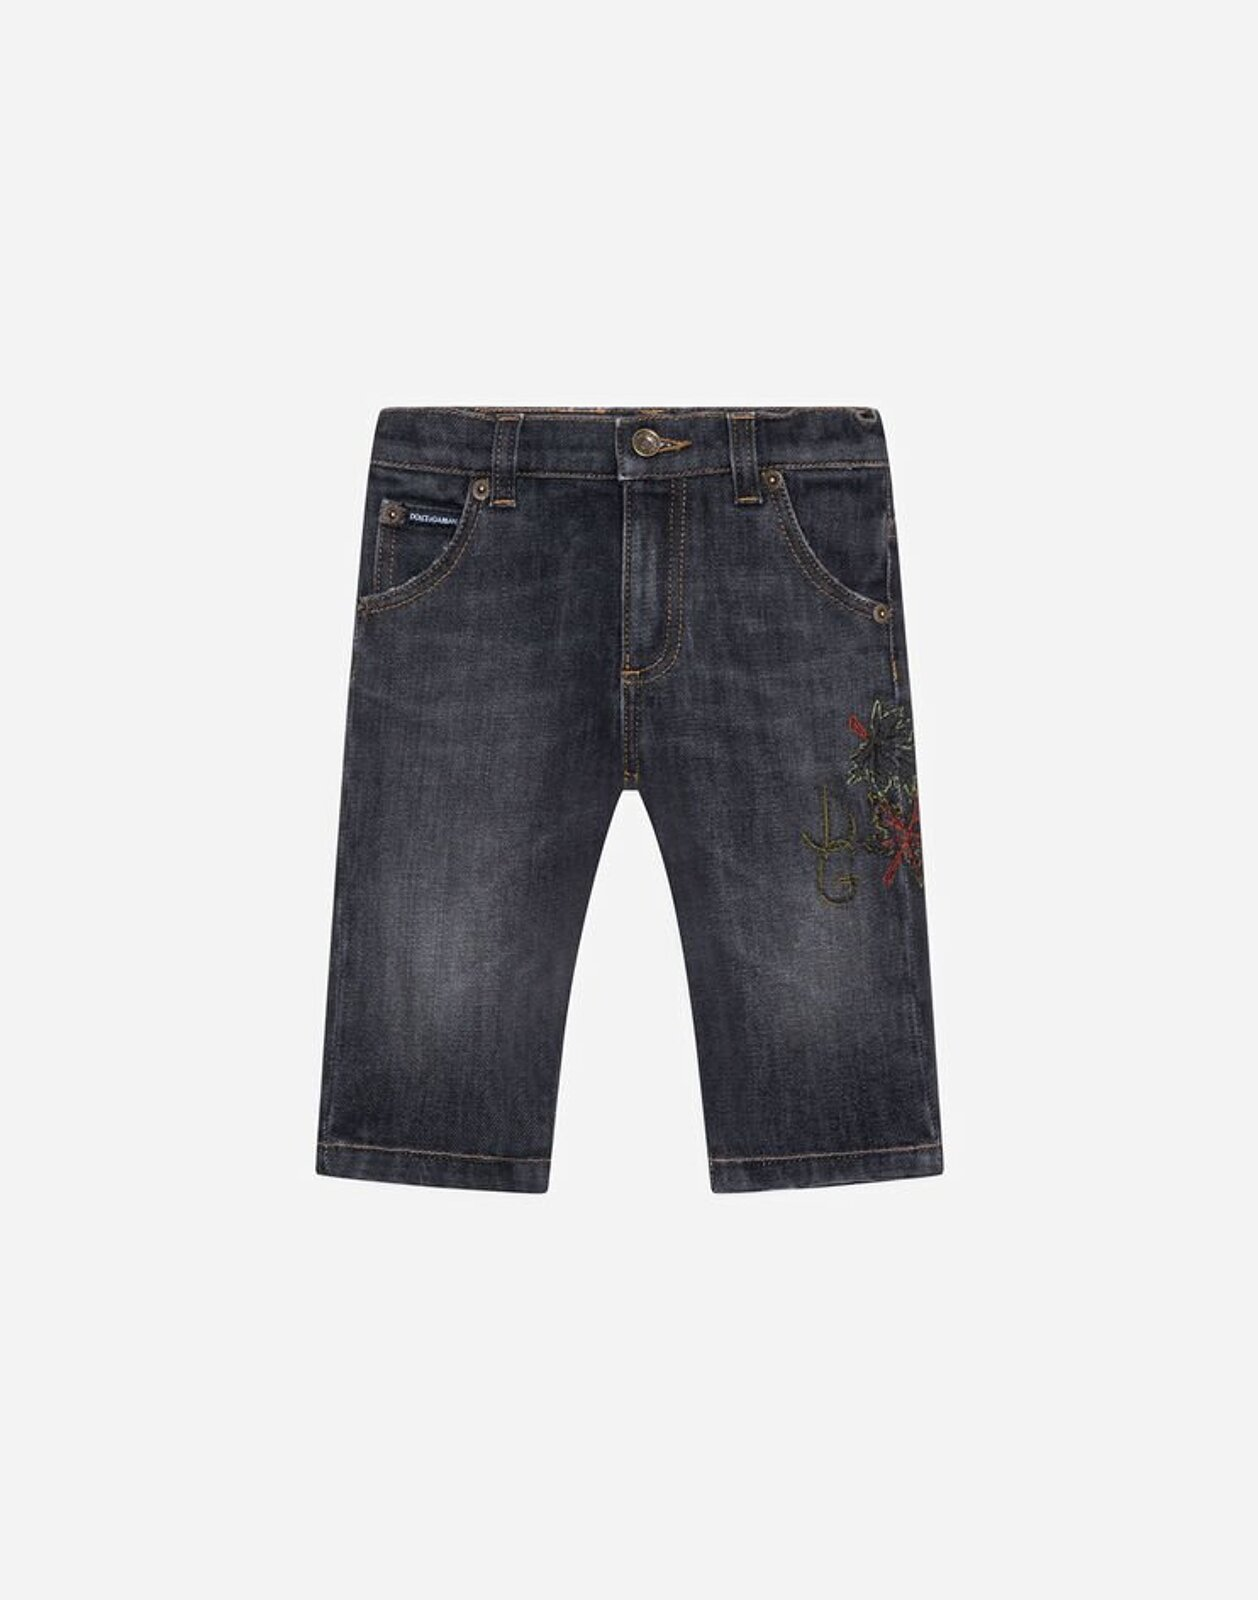 Jeans Regular Stretch Antracite Ricamo Foglie Dg - Dolce & Gabbana Junior